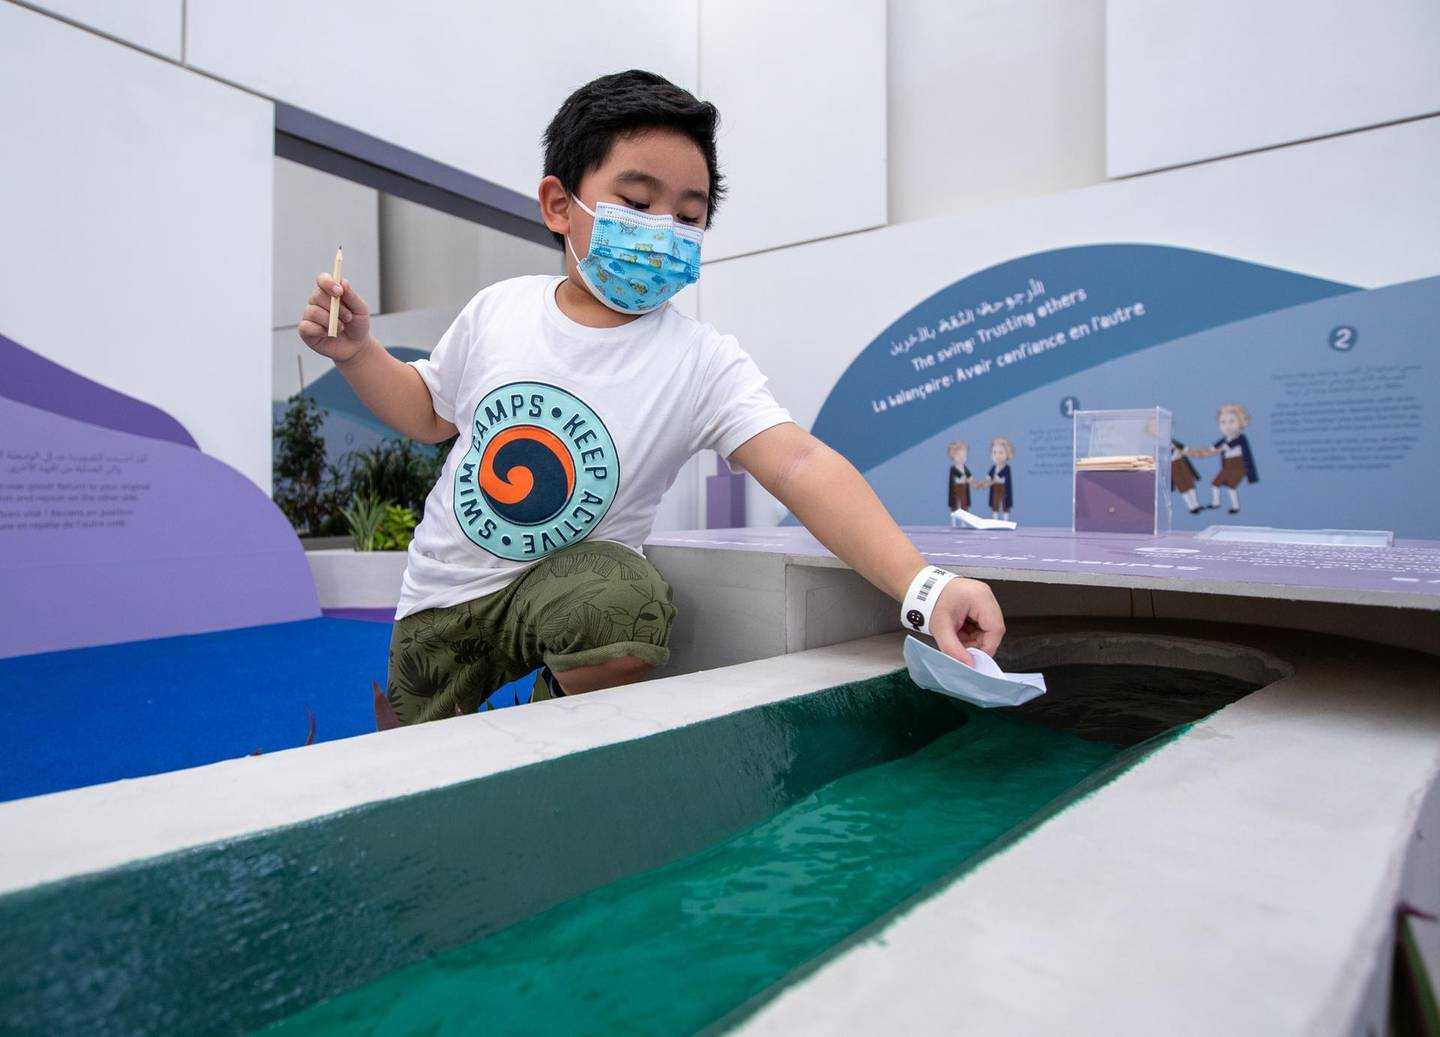 Louvre Abu Dhabi Children's Museum reopens this week. Preview/tour of the revamped space June, 15, 2021. Jacob Morella, 4, launches his paper boat at the garden area of the exhibition. Victor Besa / The National. Reporter: Alexandra Chaves for Arts & Culture.